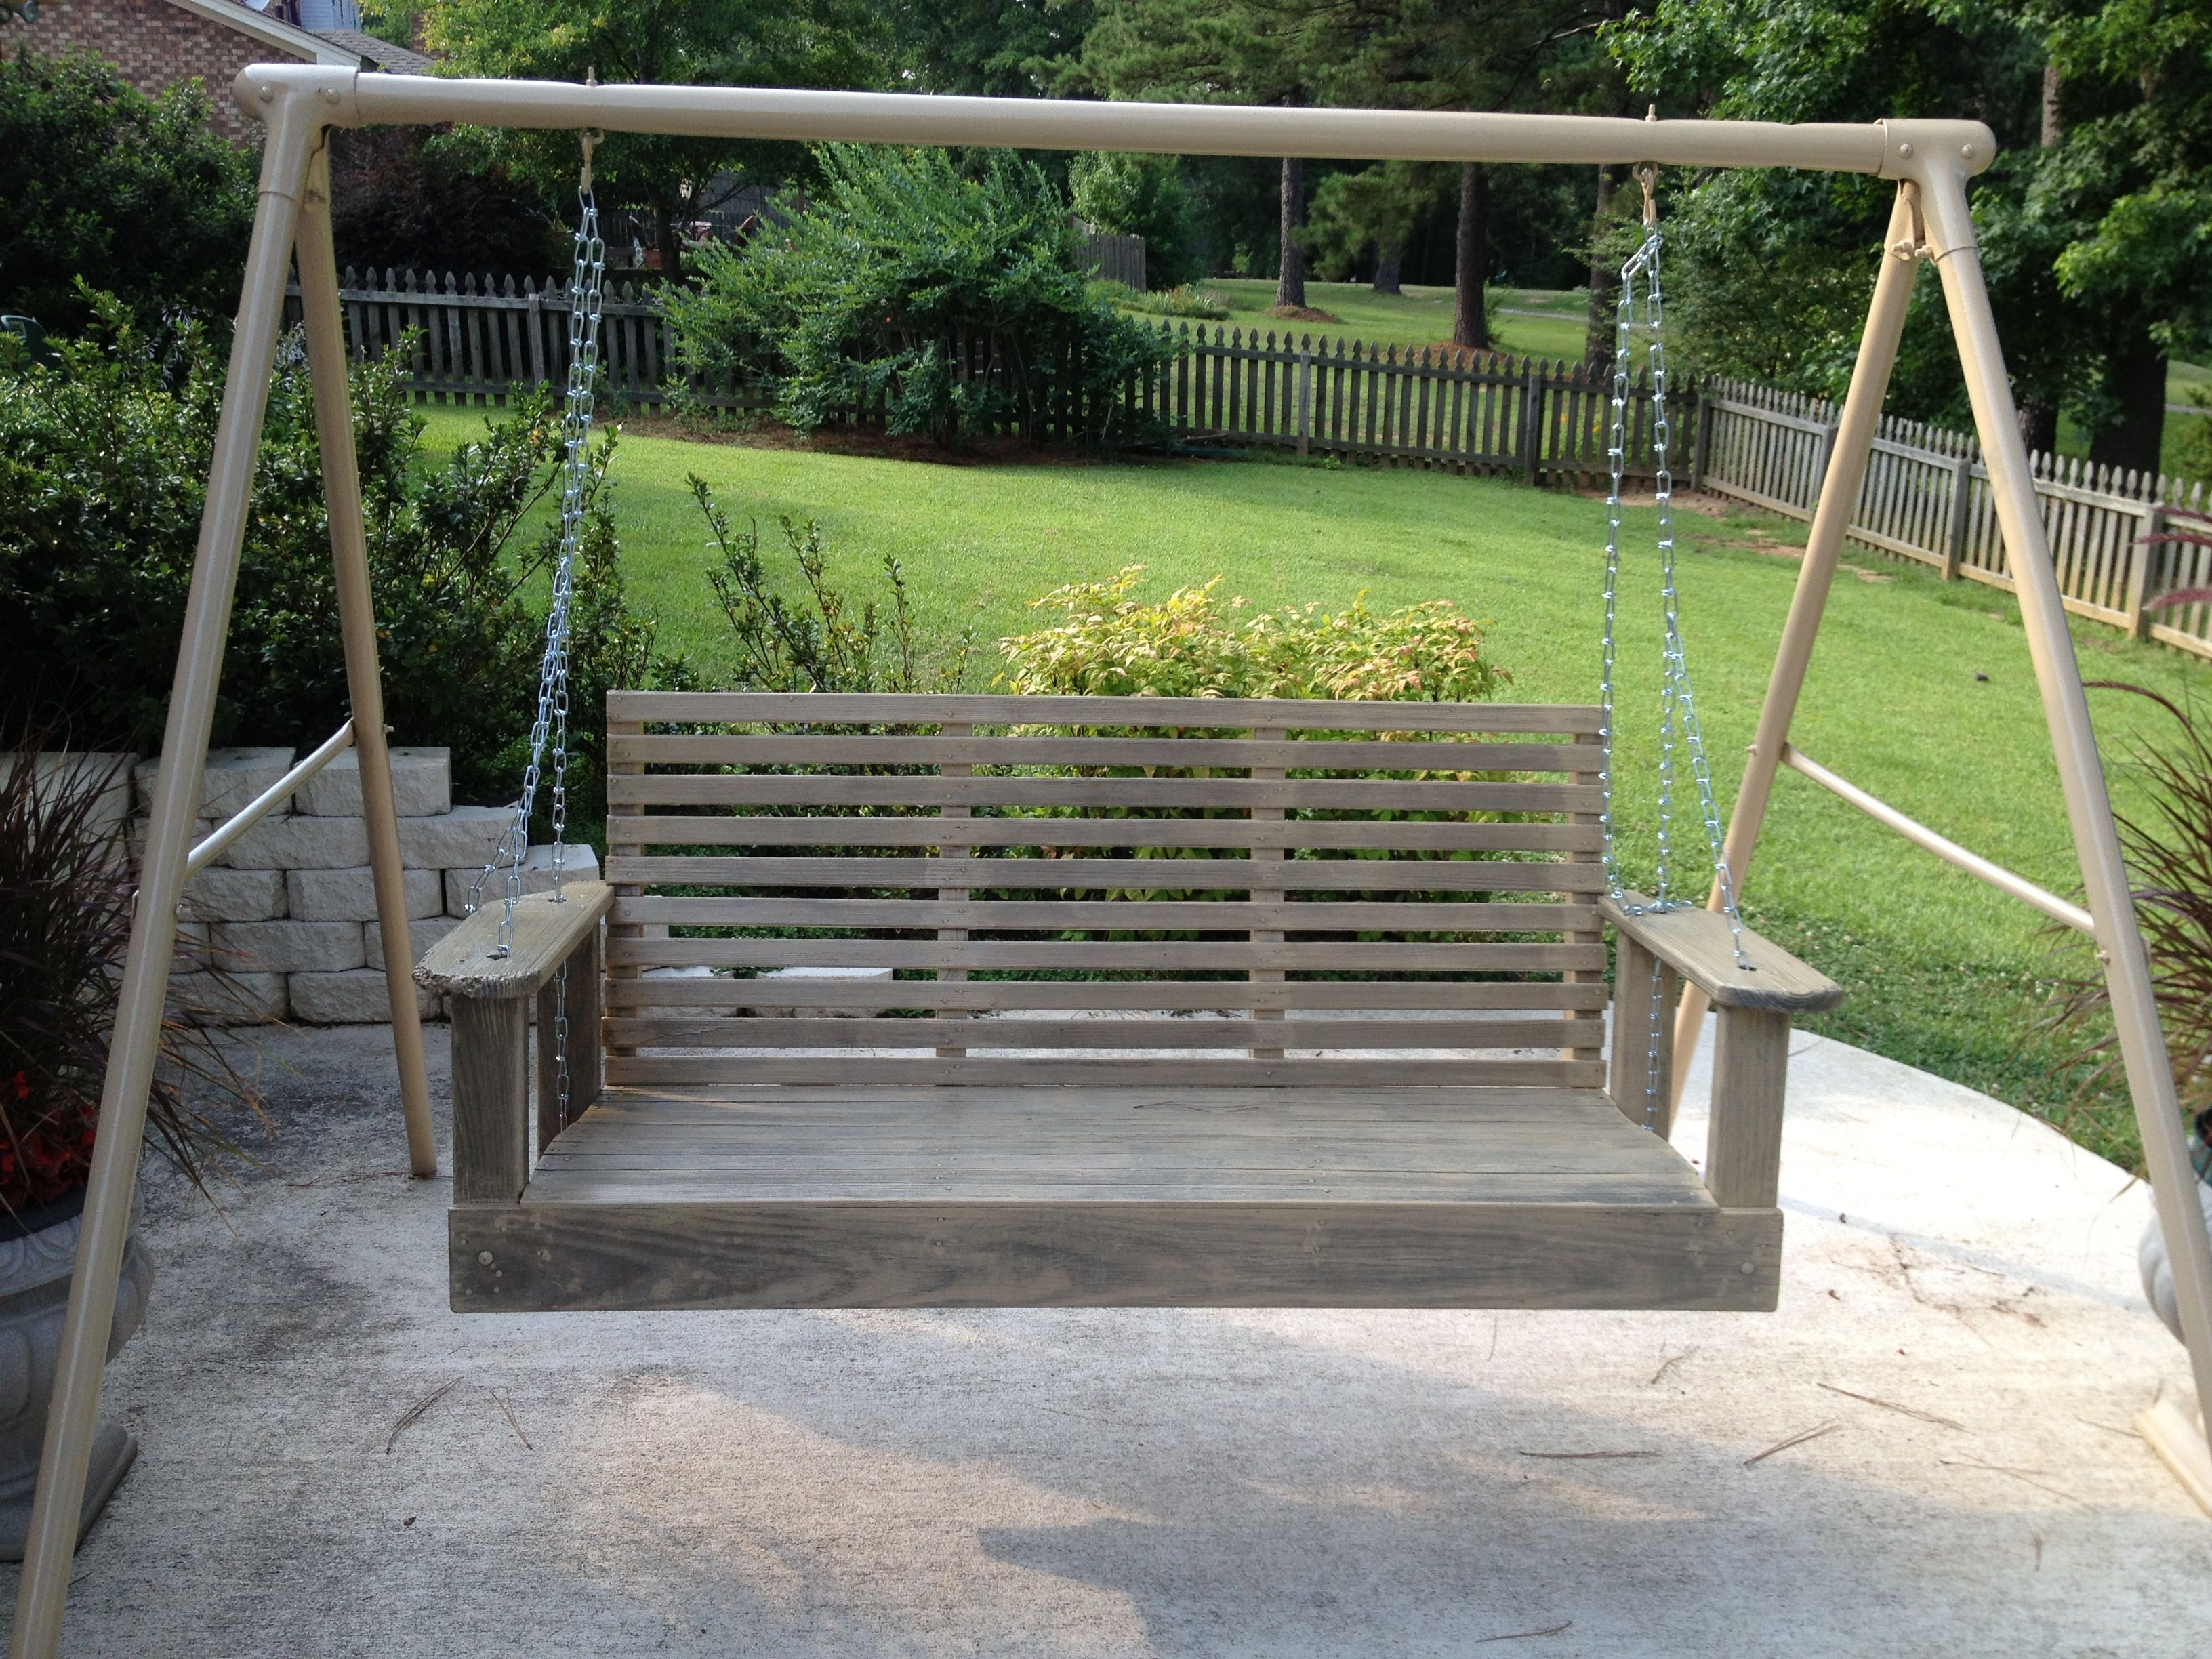 Bench Swing Salvage Recovery Benches Outdoor Furniture Pinterest